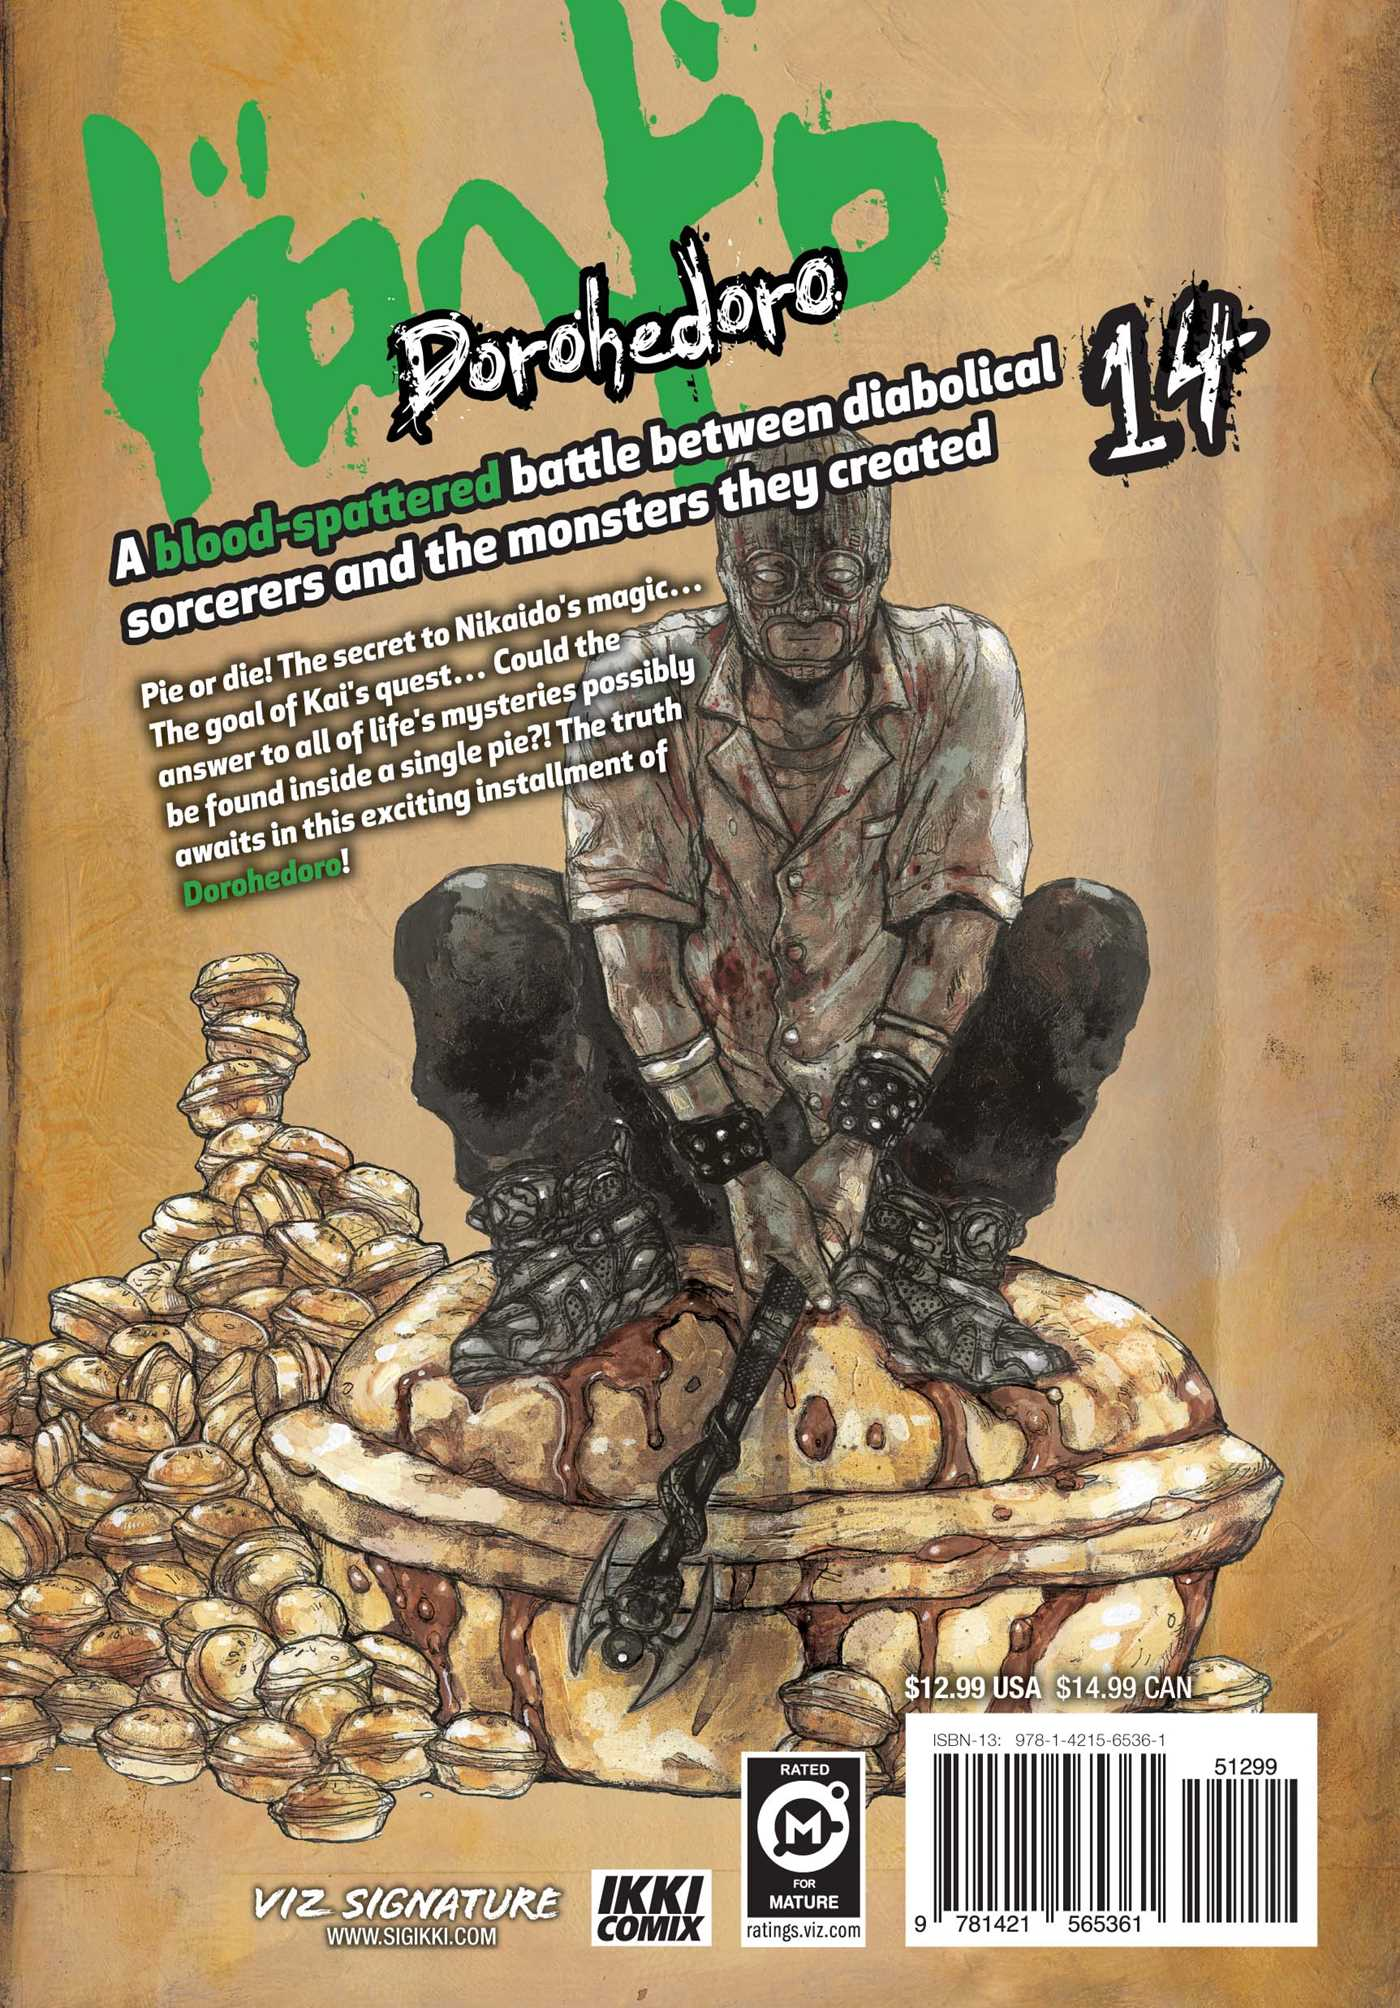 Dorohedoro vol 14 9781421565361 hr back